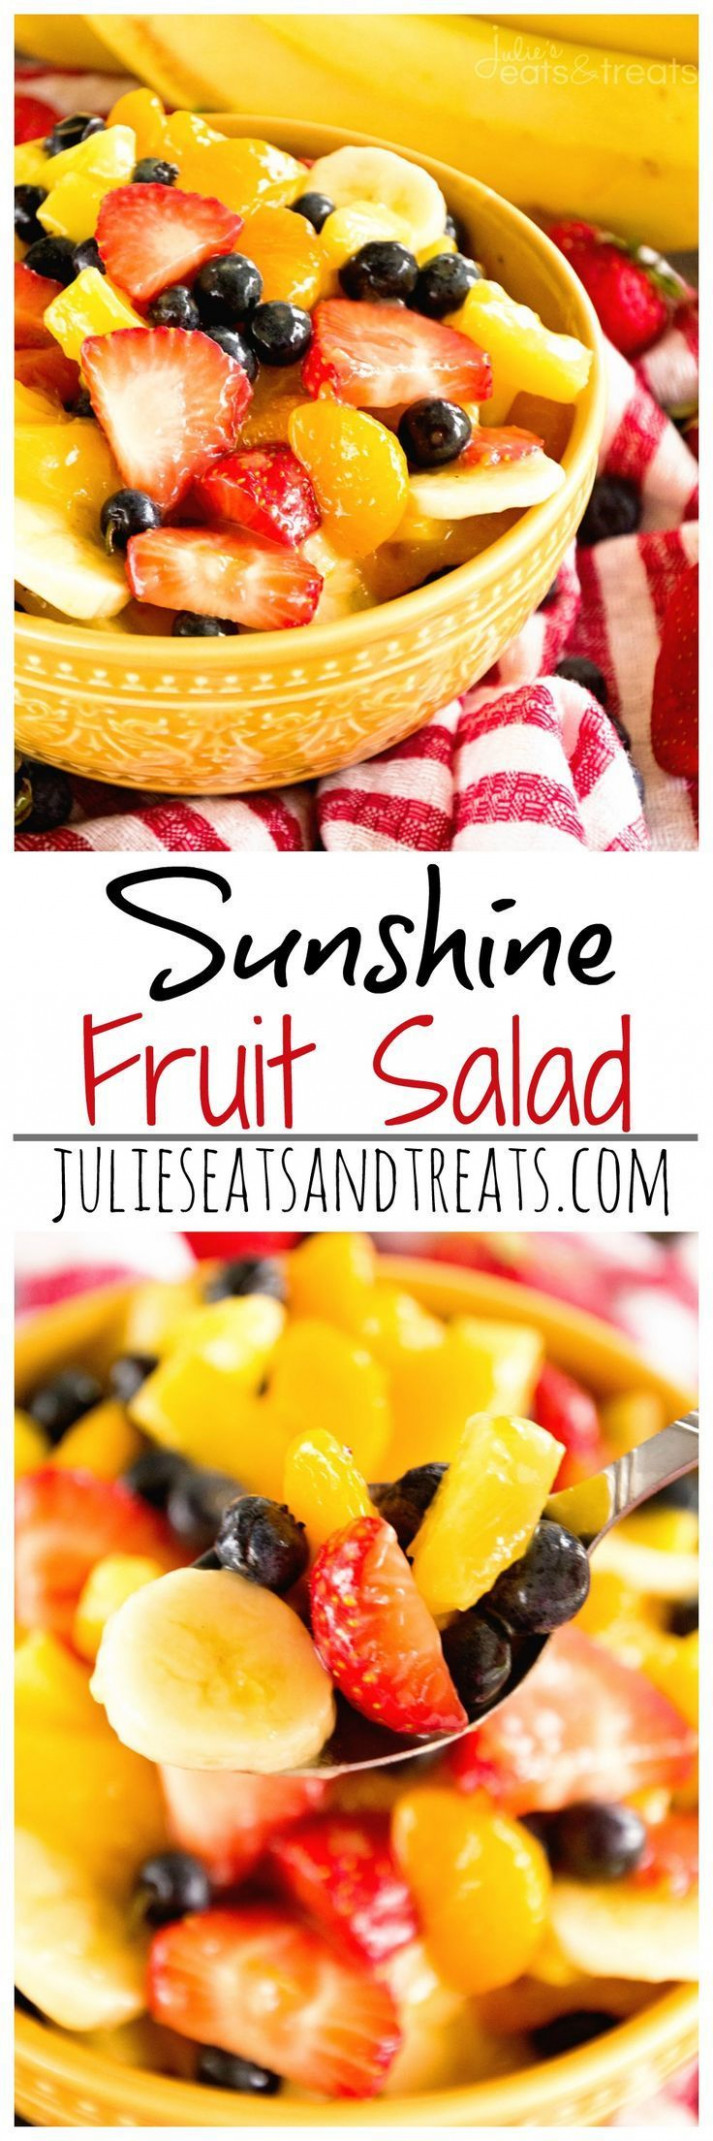 Best 25+ Easy fruit salad ideas on Pinterest | Ambrosia ...